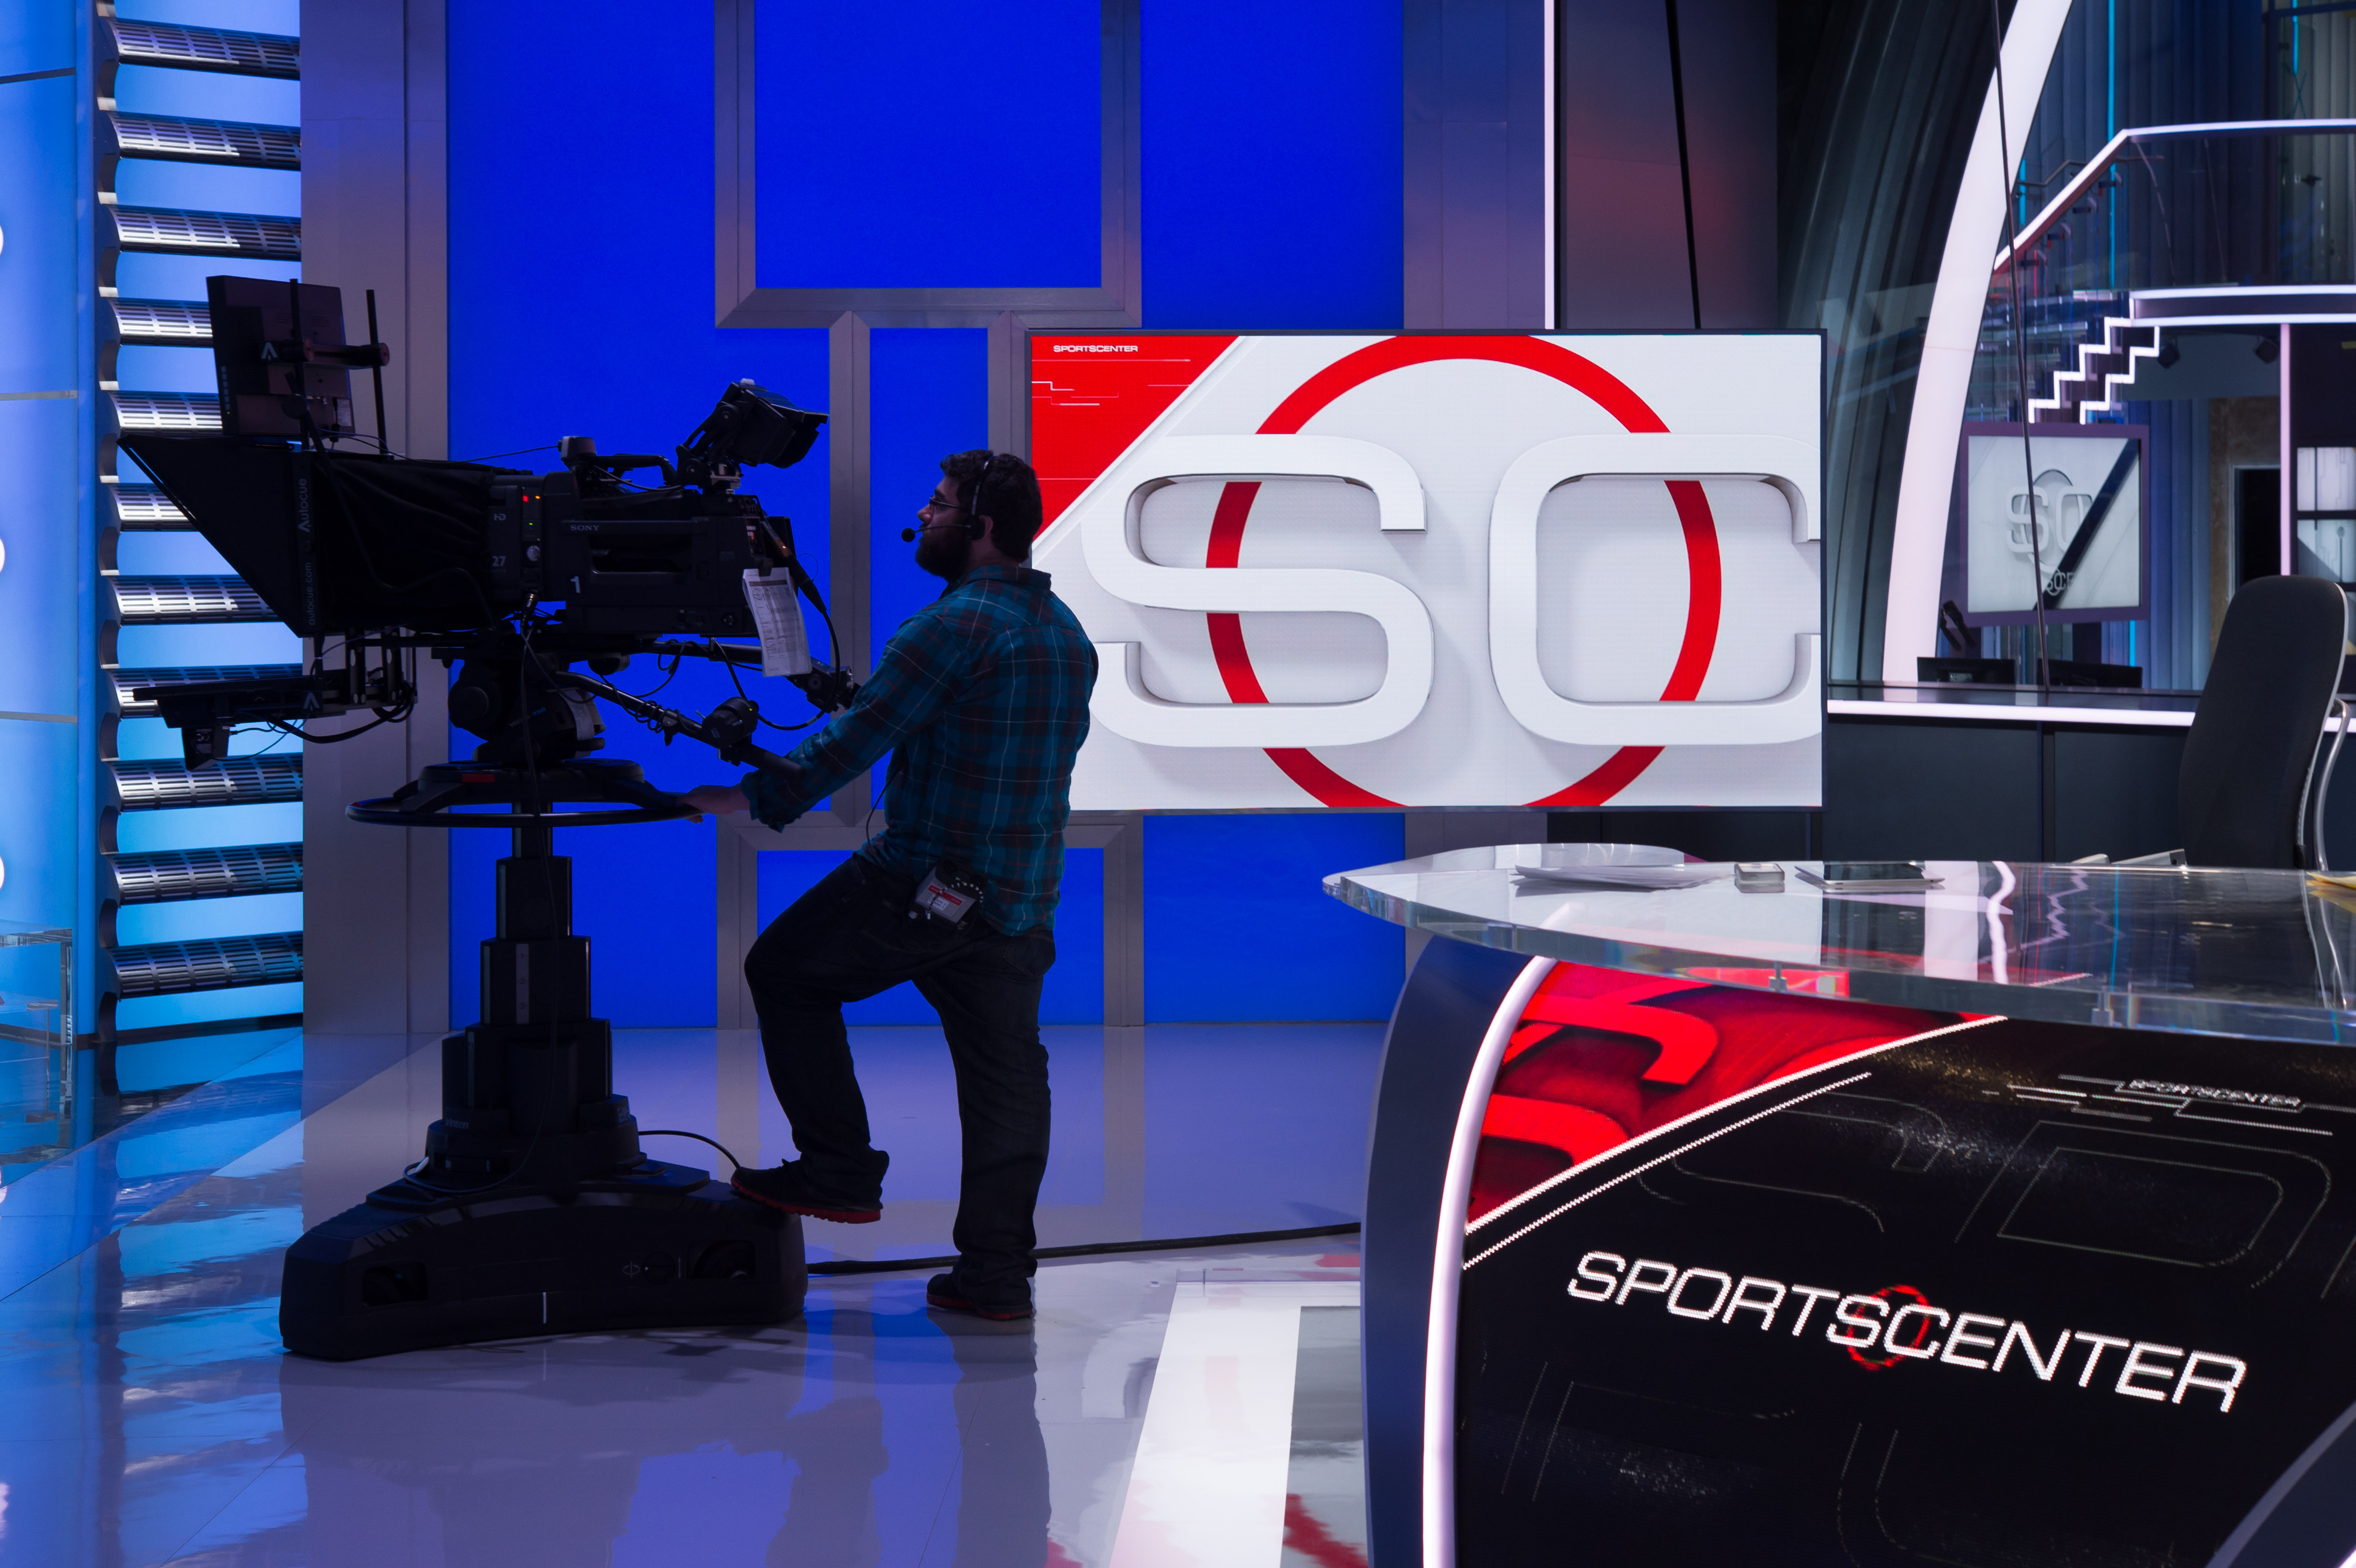 Espn Asks 100 Highest Paid Personalities To Take Temporary Pay Cuts The Boston Globe